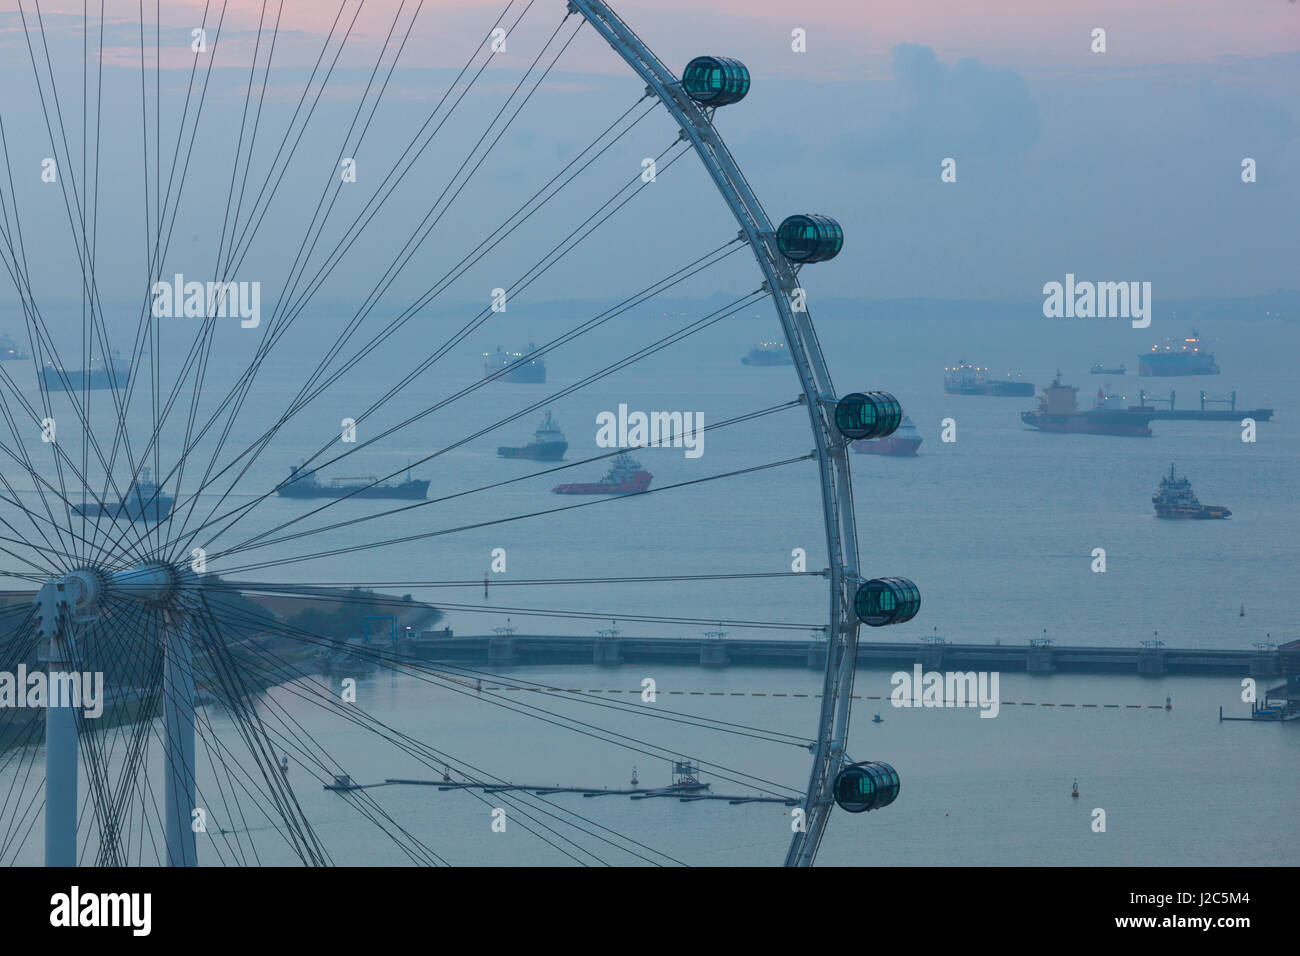 Singapore, Singapore Flyer, giant Ferris wheel, elevated view, dawn - Stock Image